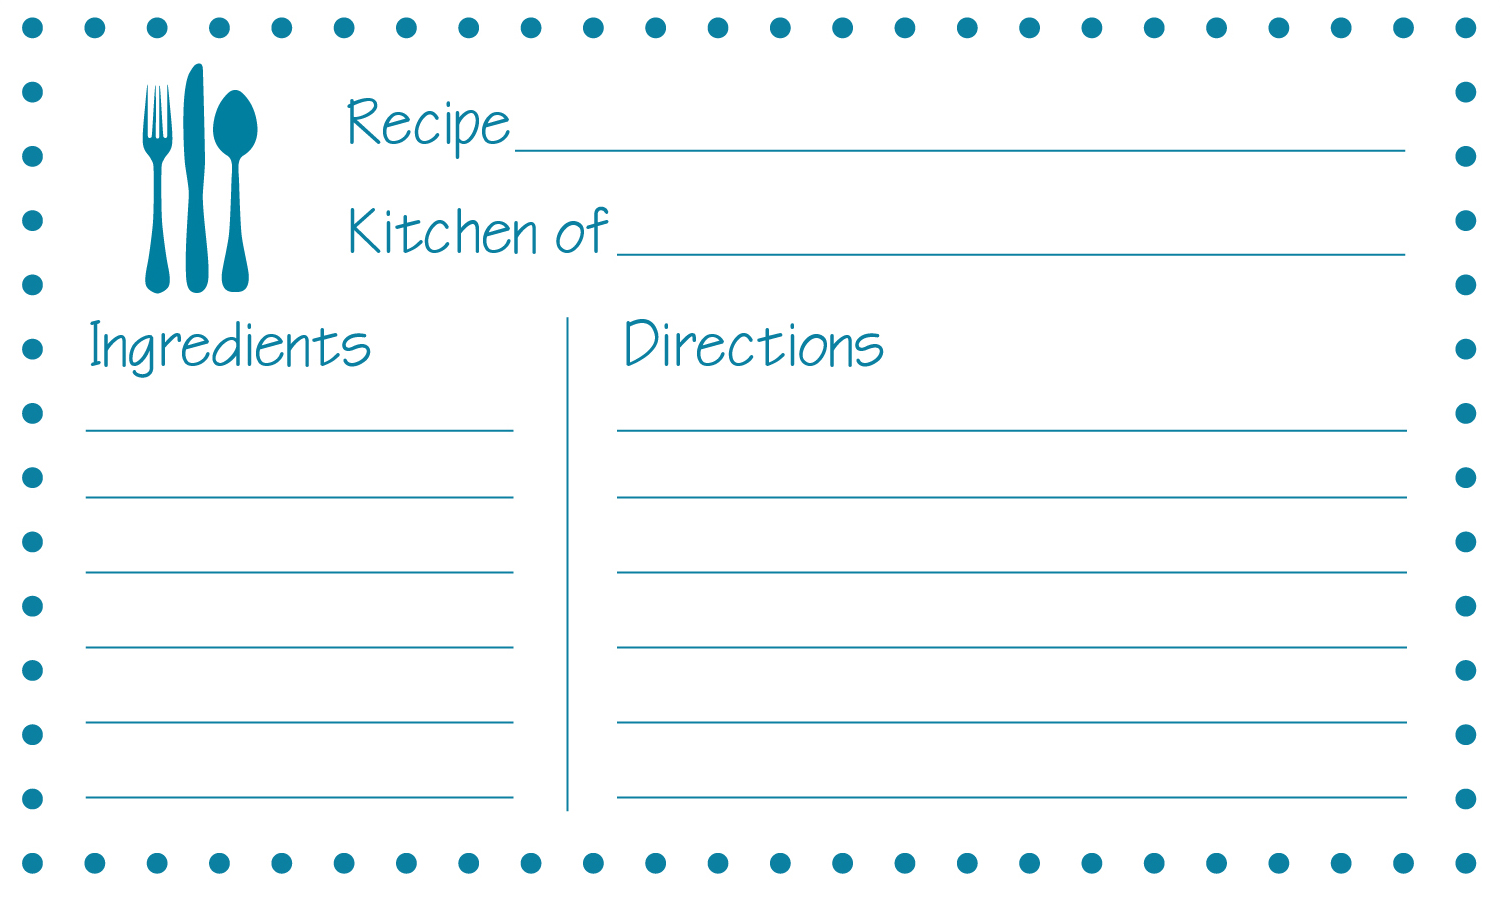 8 Best Images of Free Printable 3X5 Recipe Cards ...